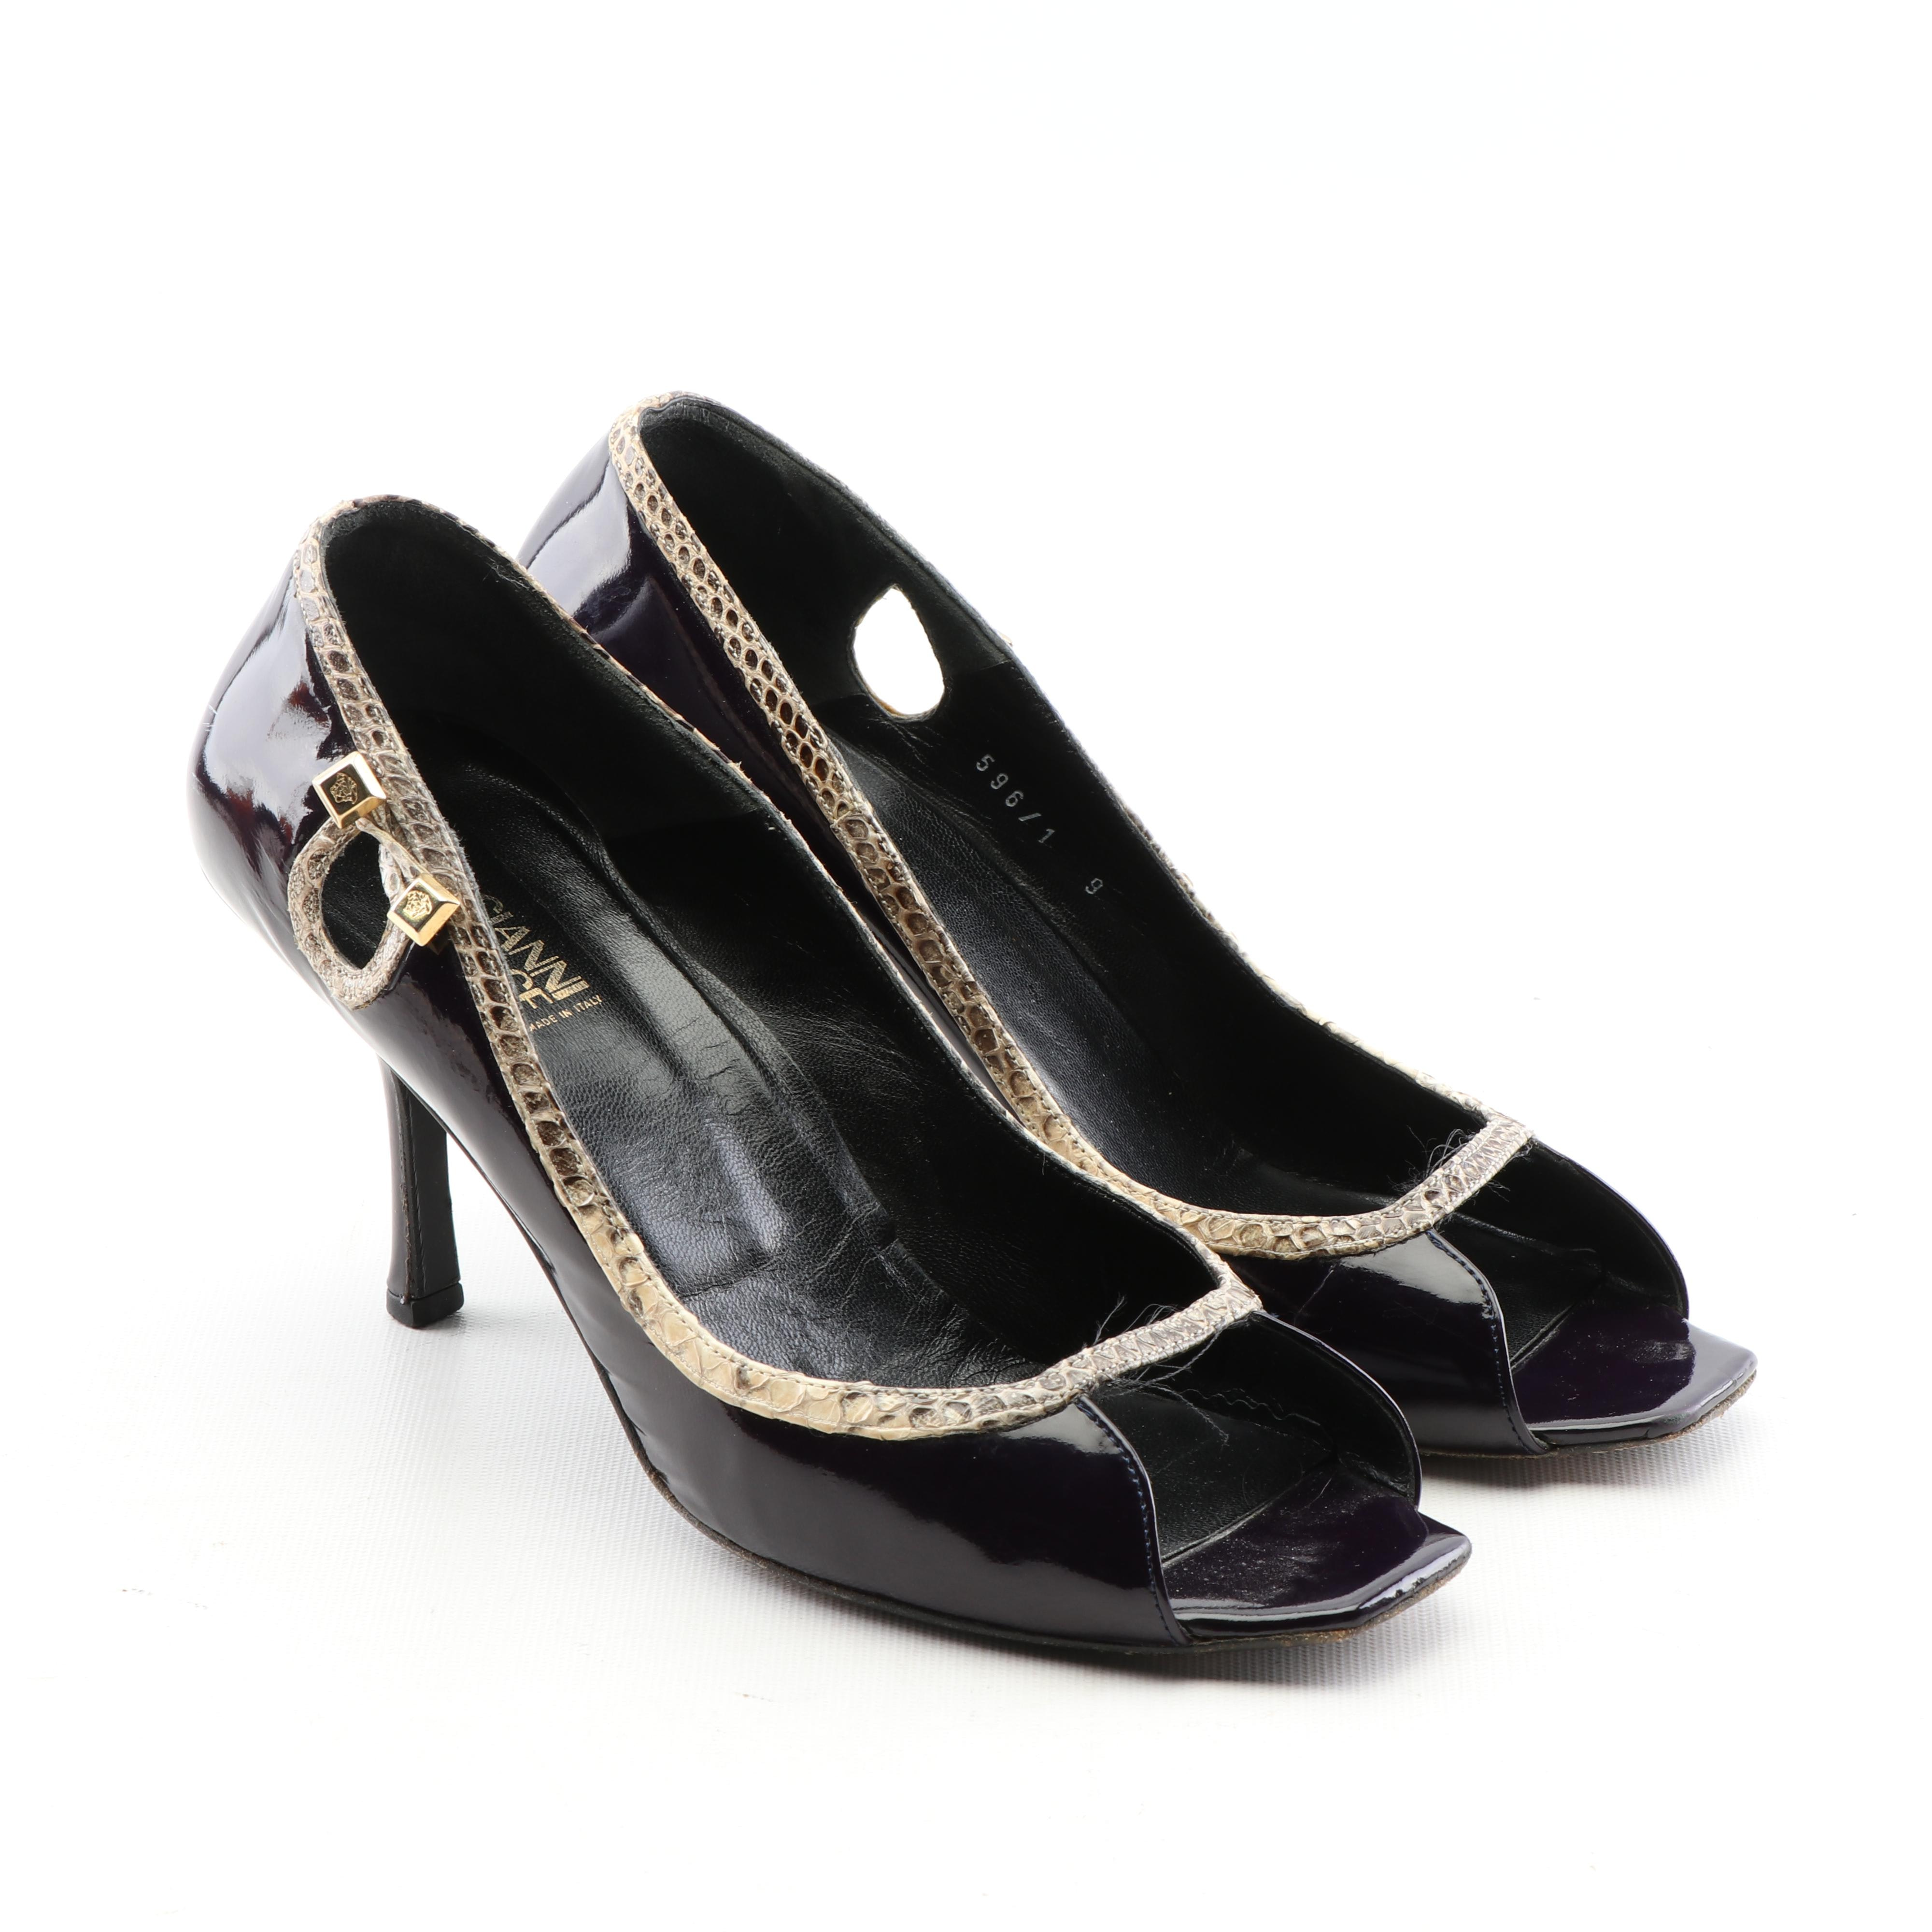 Gianni Versace Plum Patent Leather Open-Toe Pumps with Python Snakeskin Trim